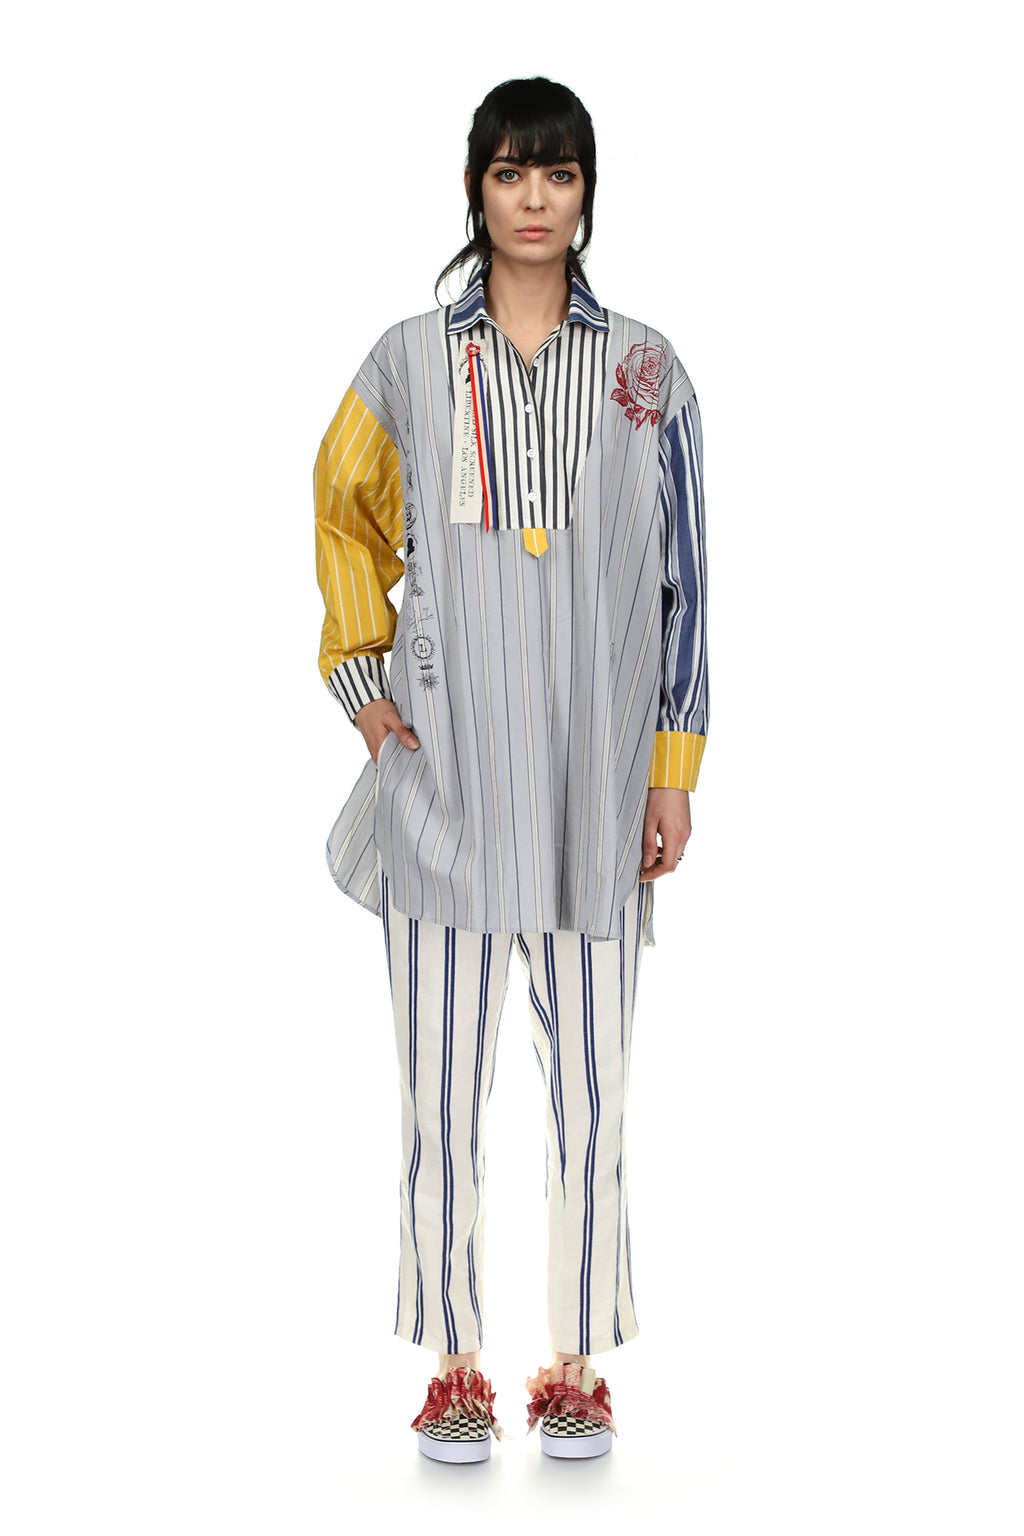 Silk Screen Mélange Mixed Stripe Tunic - Spring 2021 - Libertine